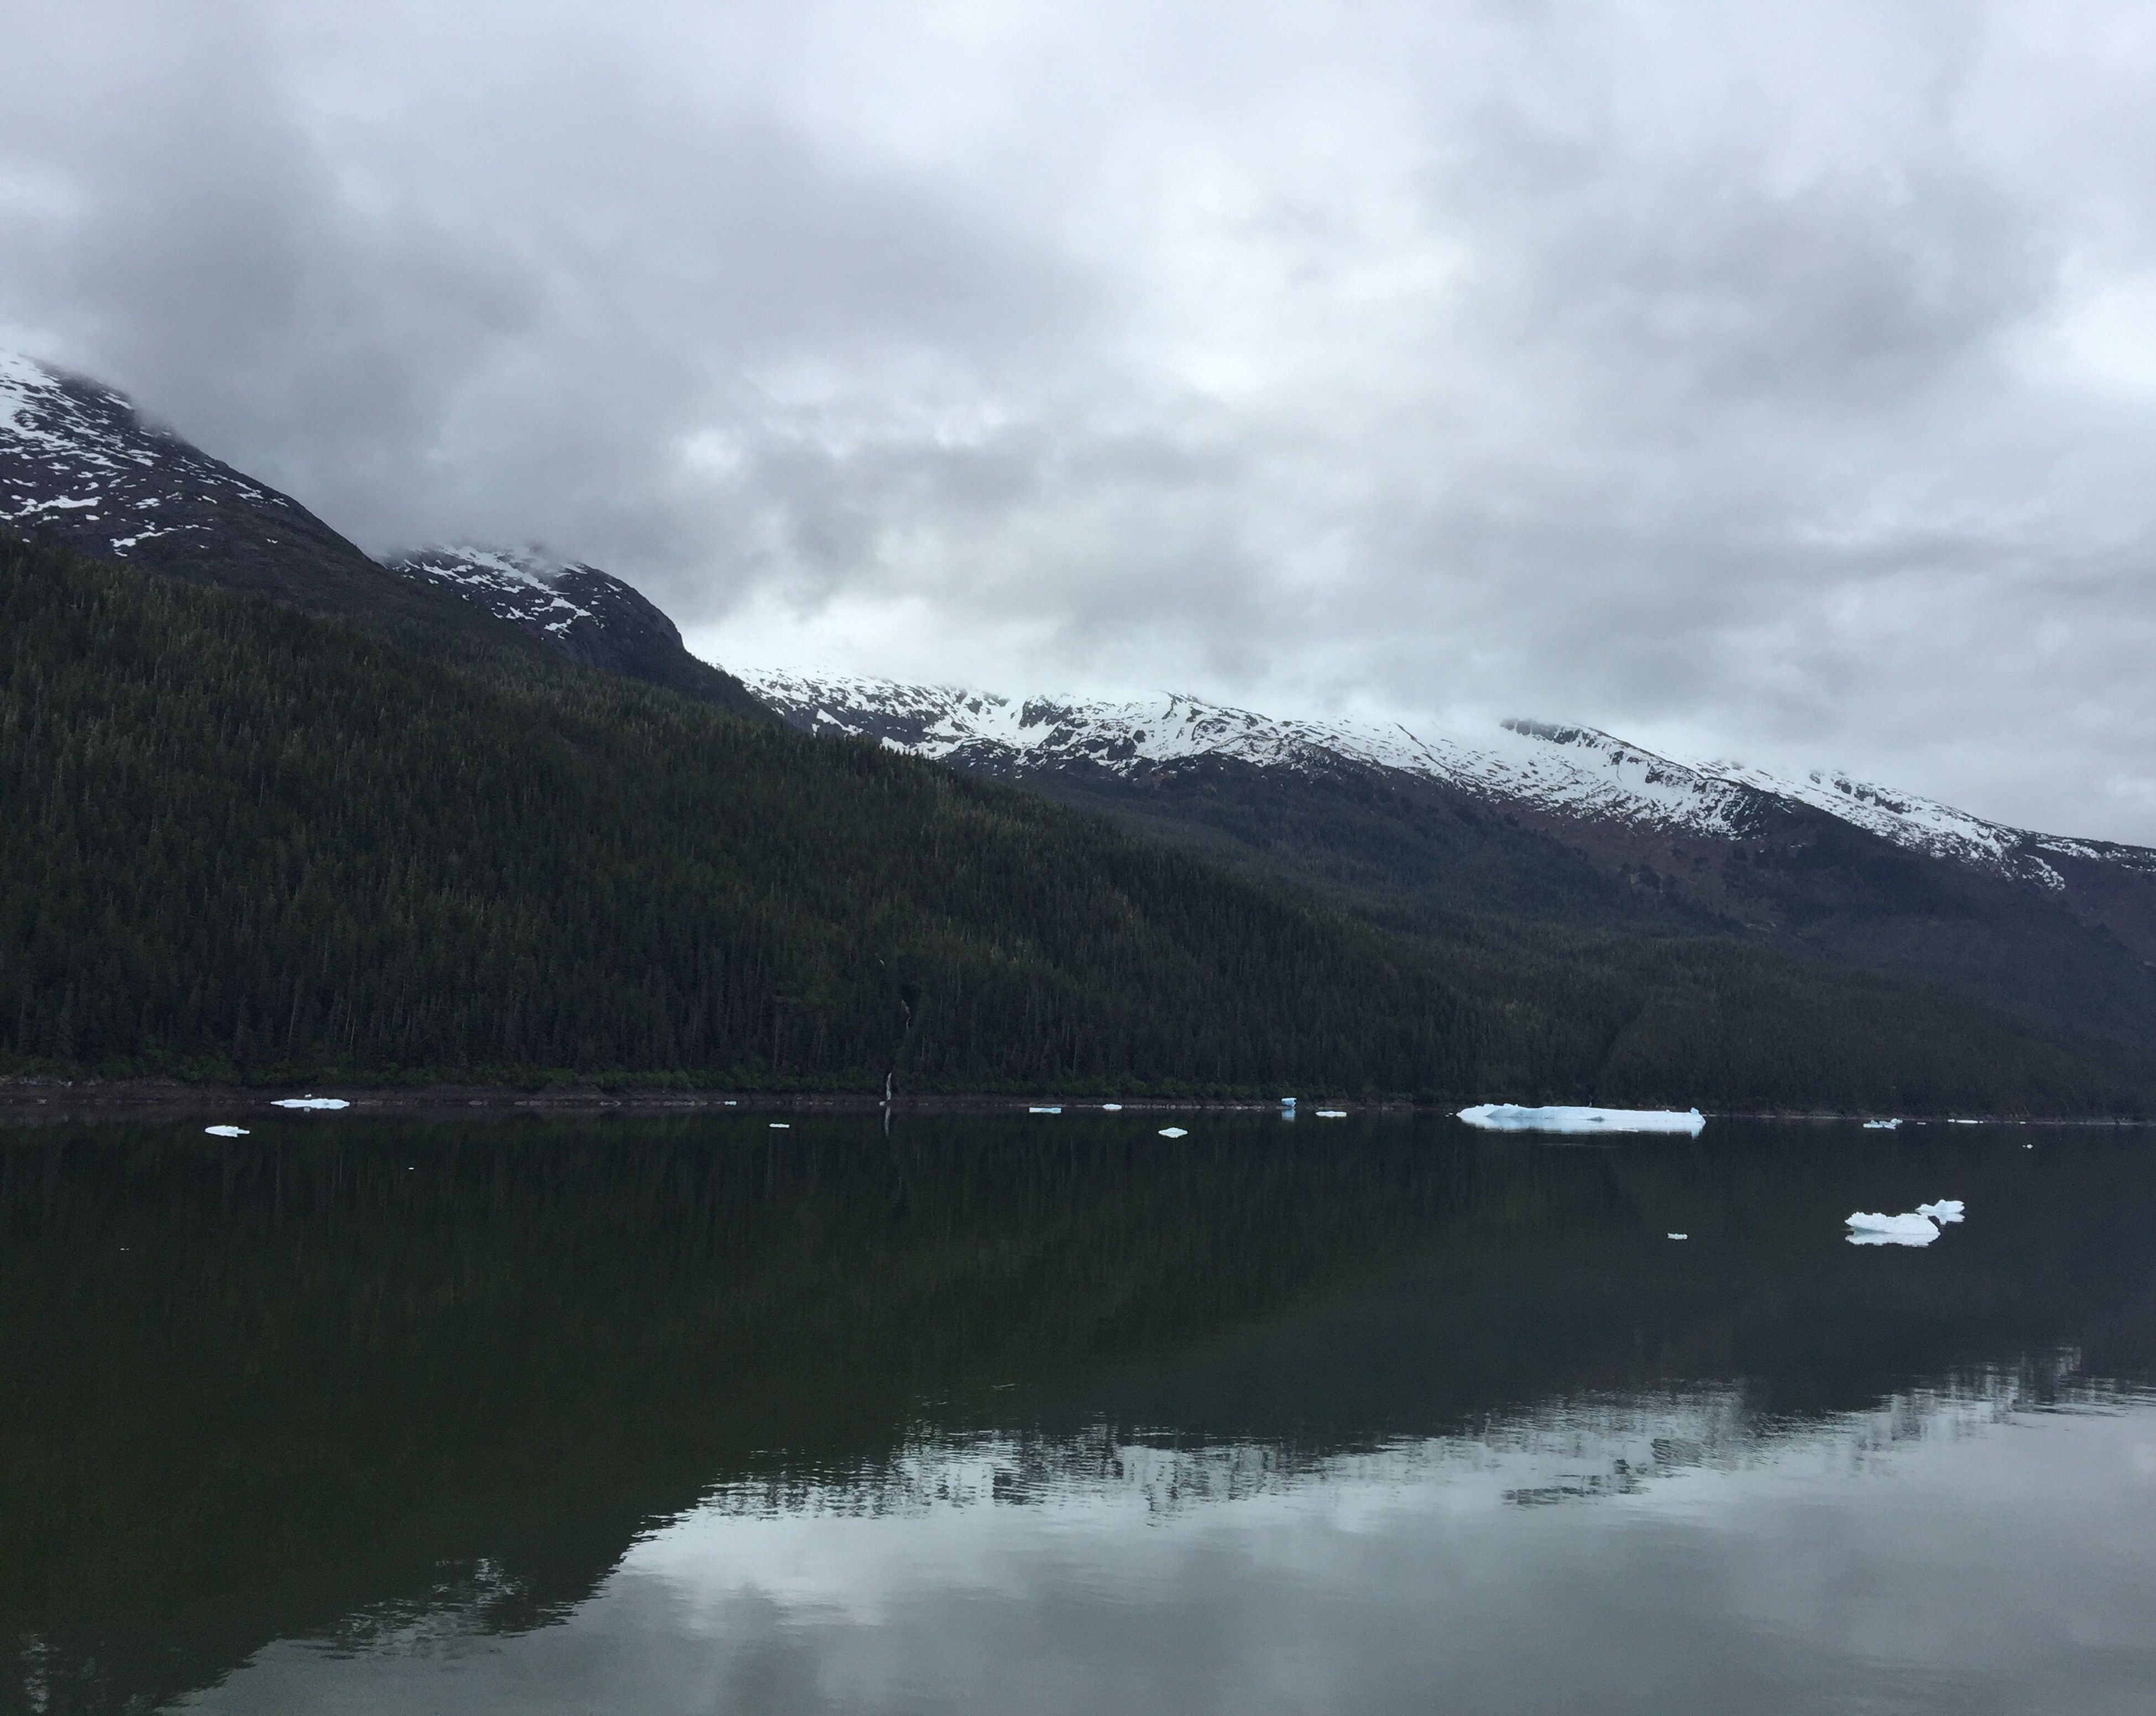 reflection, beauty in nature, mountain, water, nature, lake, sky, waterfront, outdoors, day, tranquility, no people, scenics, snow